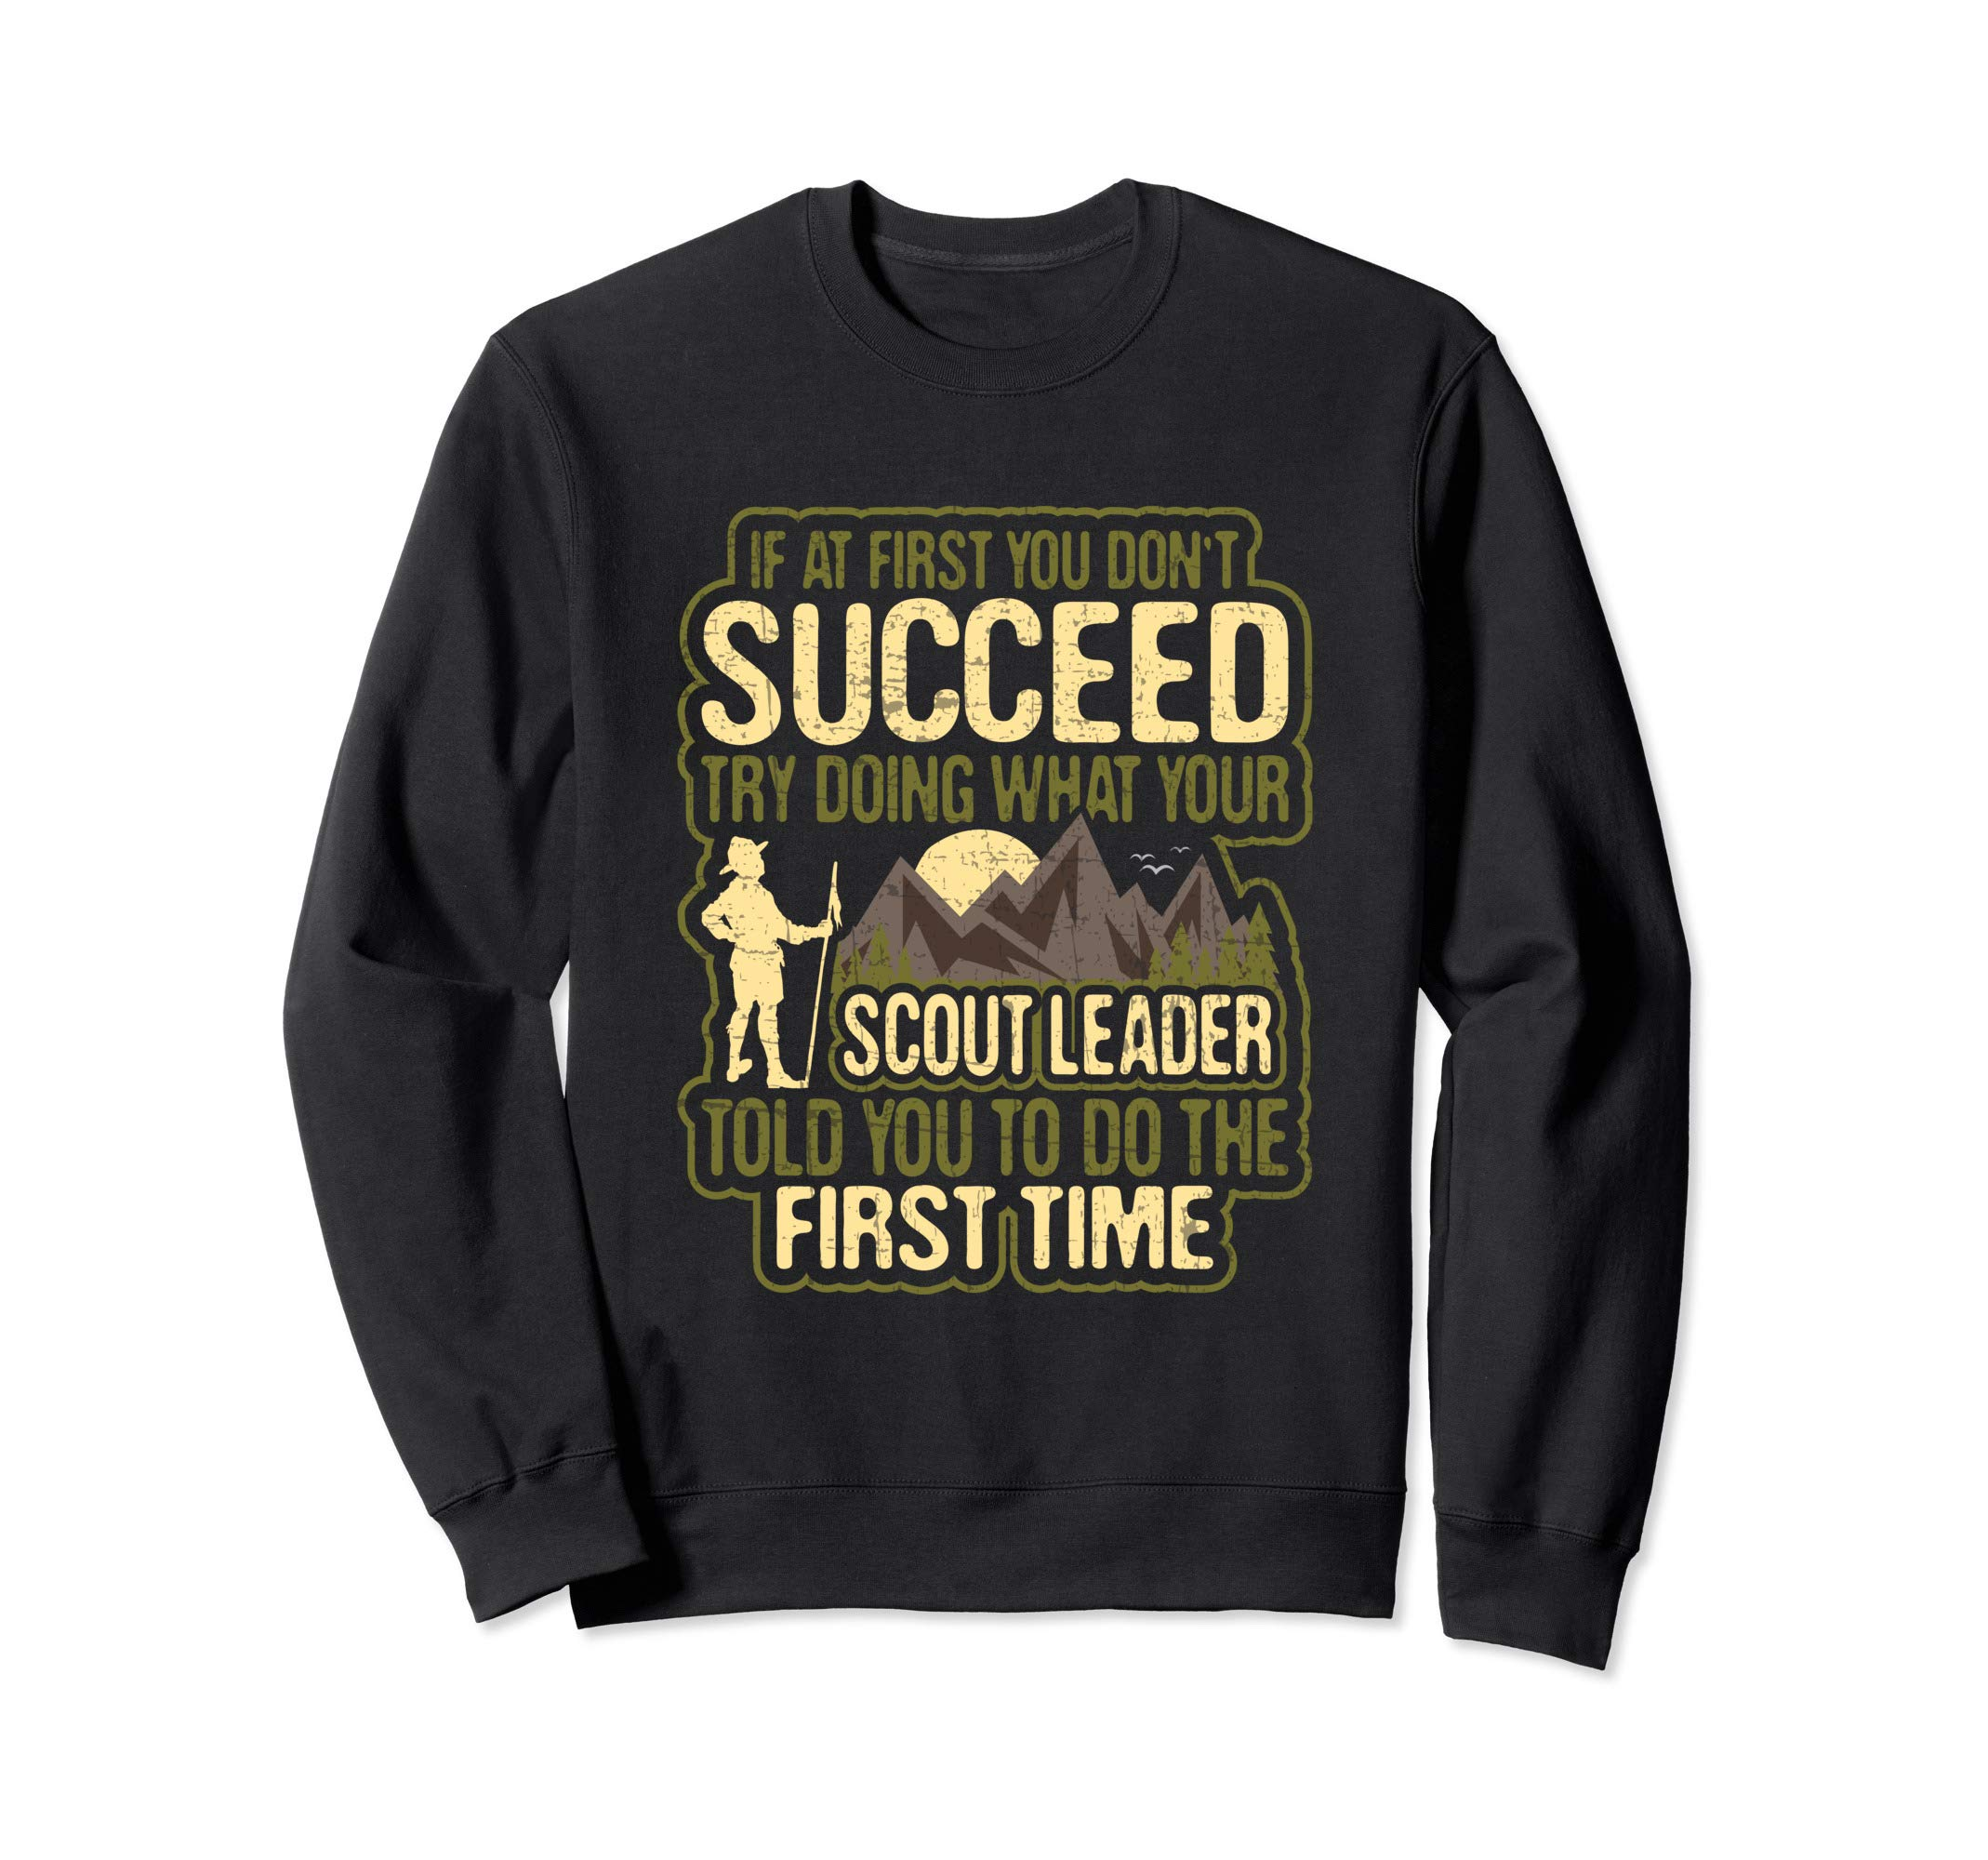 Funny Scout Leader Cub Camping Boy Hiking Scouting Troop Sweatshirt by Scouting Designs By Ark